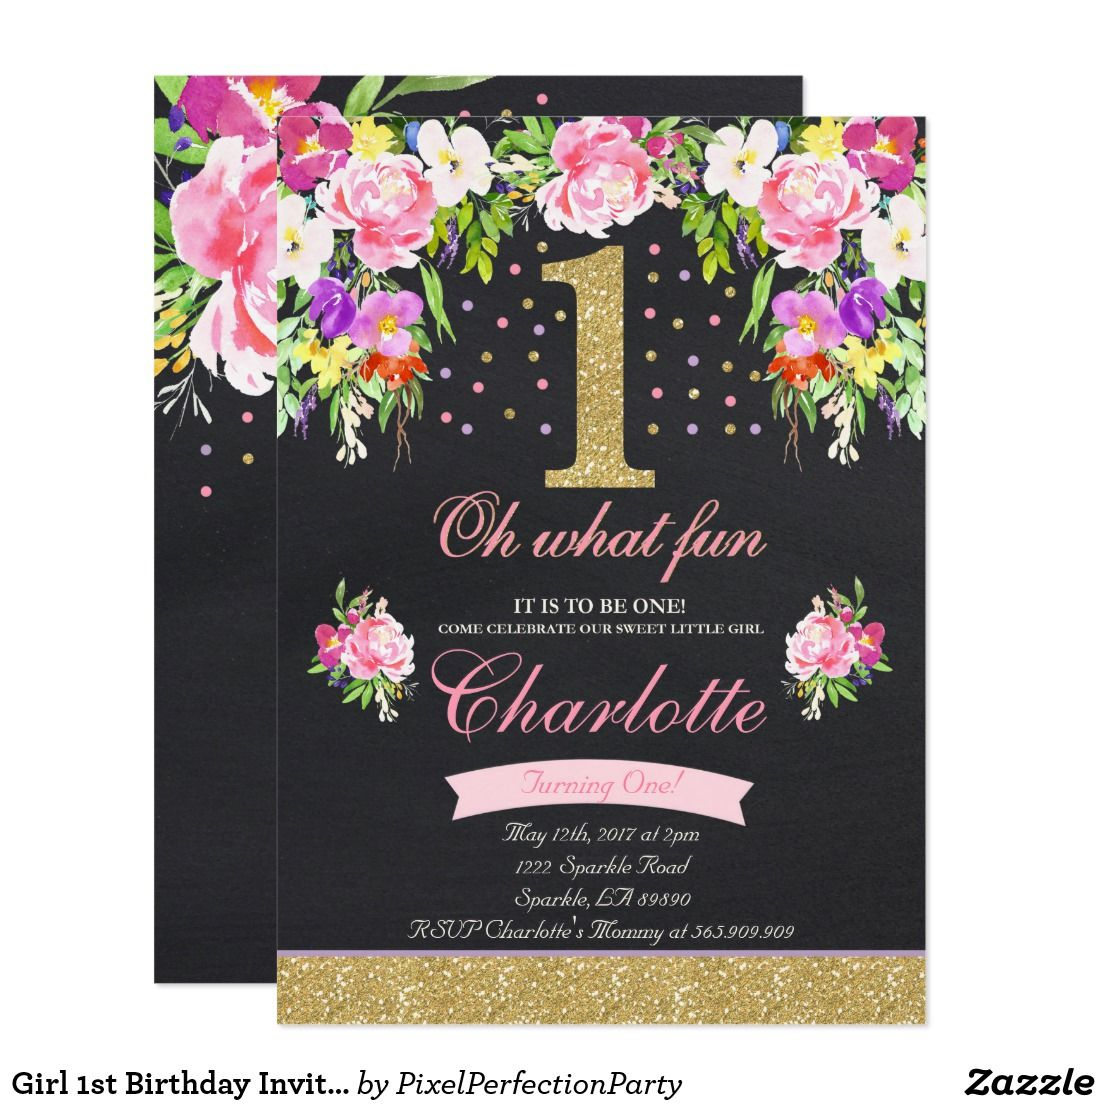 Girl 1st birthday invitation floral pink gold floral 1st birthday girl 1st birthday invitation floral pink gold floral 1st birthday invitation a perfect way to filmwisefo Choice Image